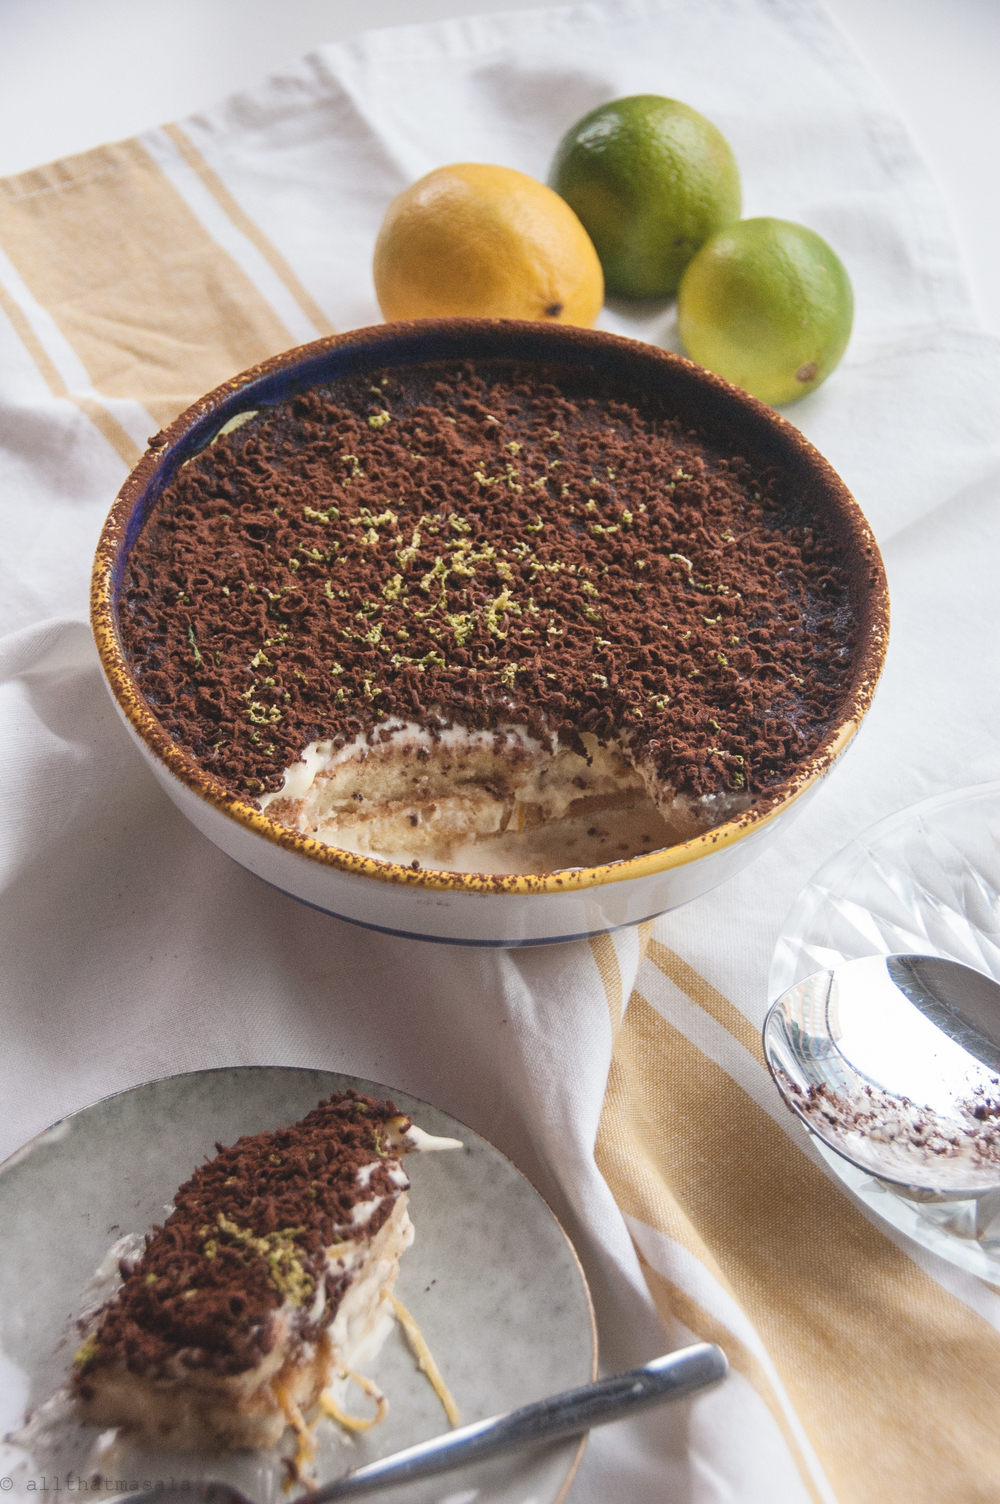 Tiramisu al imone,is a fresh and fragrant Amalfi twist to a classic Venetian dessert.LAdyfingers dipped in lemony syrup and stacked between creamy layers of mascarpone, this is a quick and no-bake dessert recipe that takes a few minutes to whisk together and 3 hours to set.